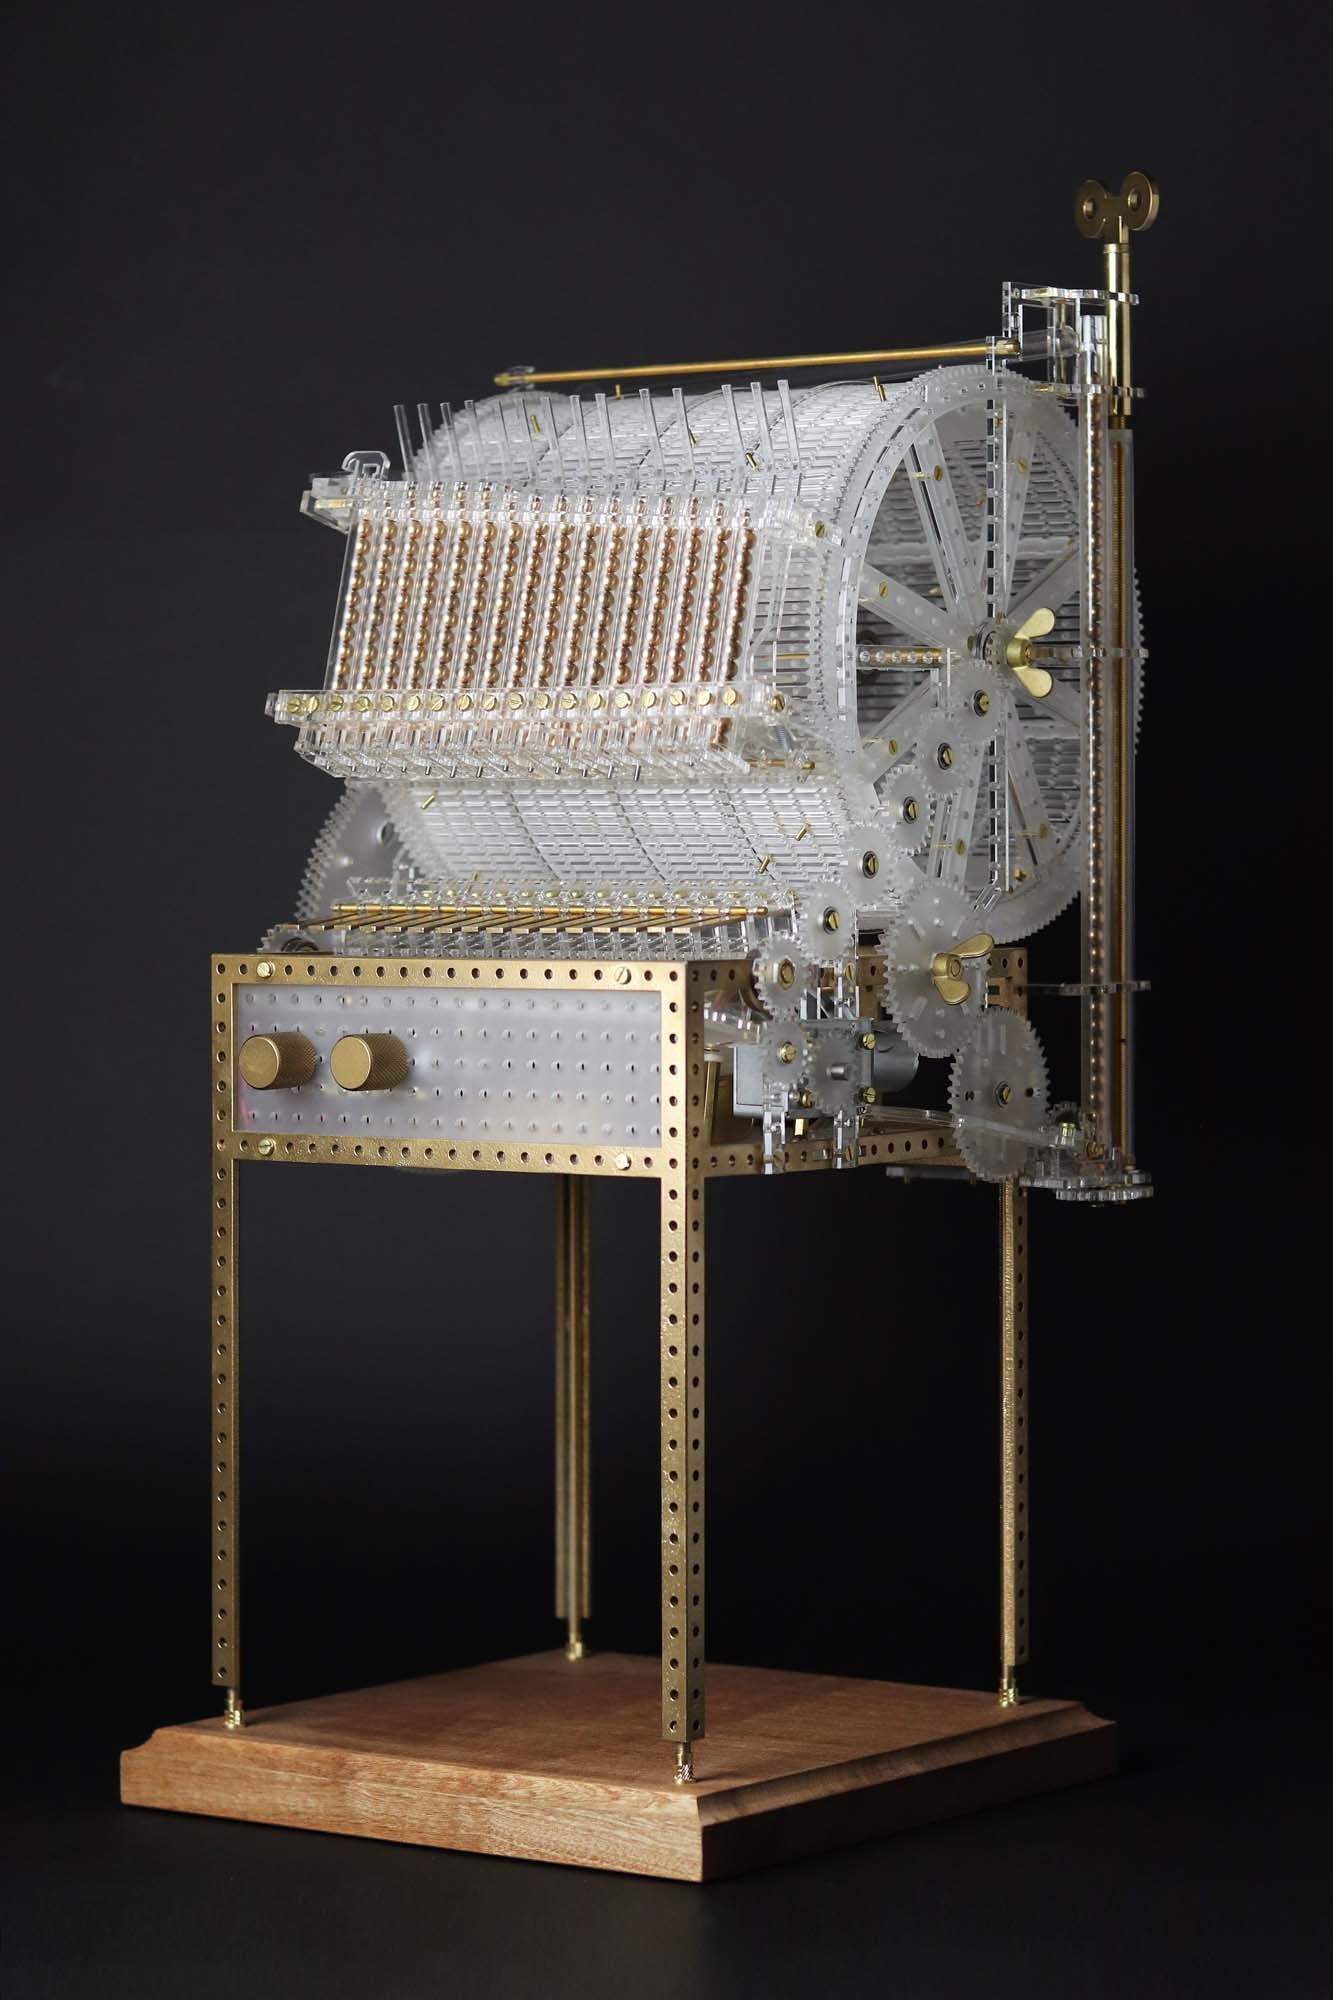 Marble Machine XS - By Love Hultén